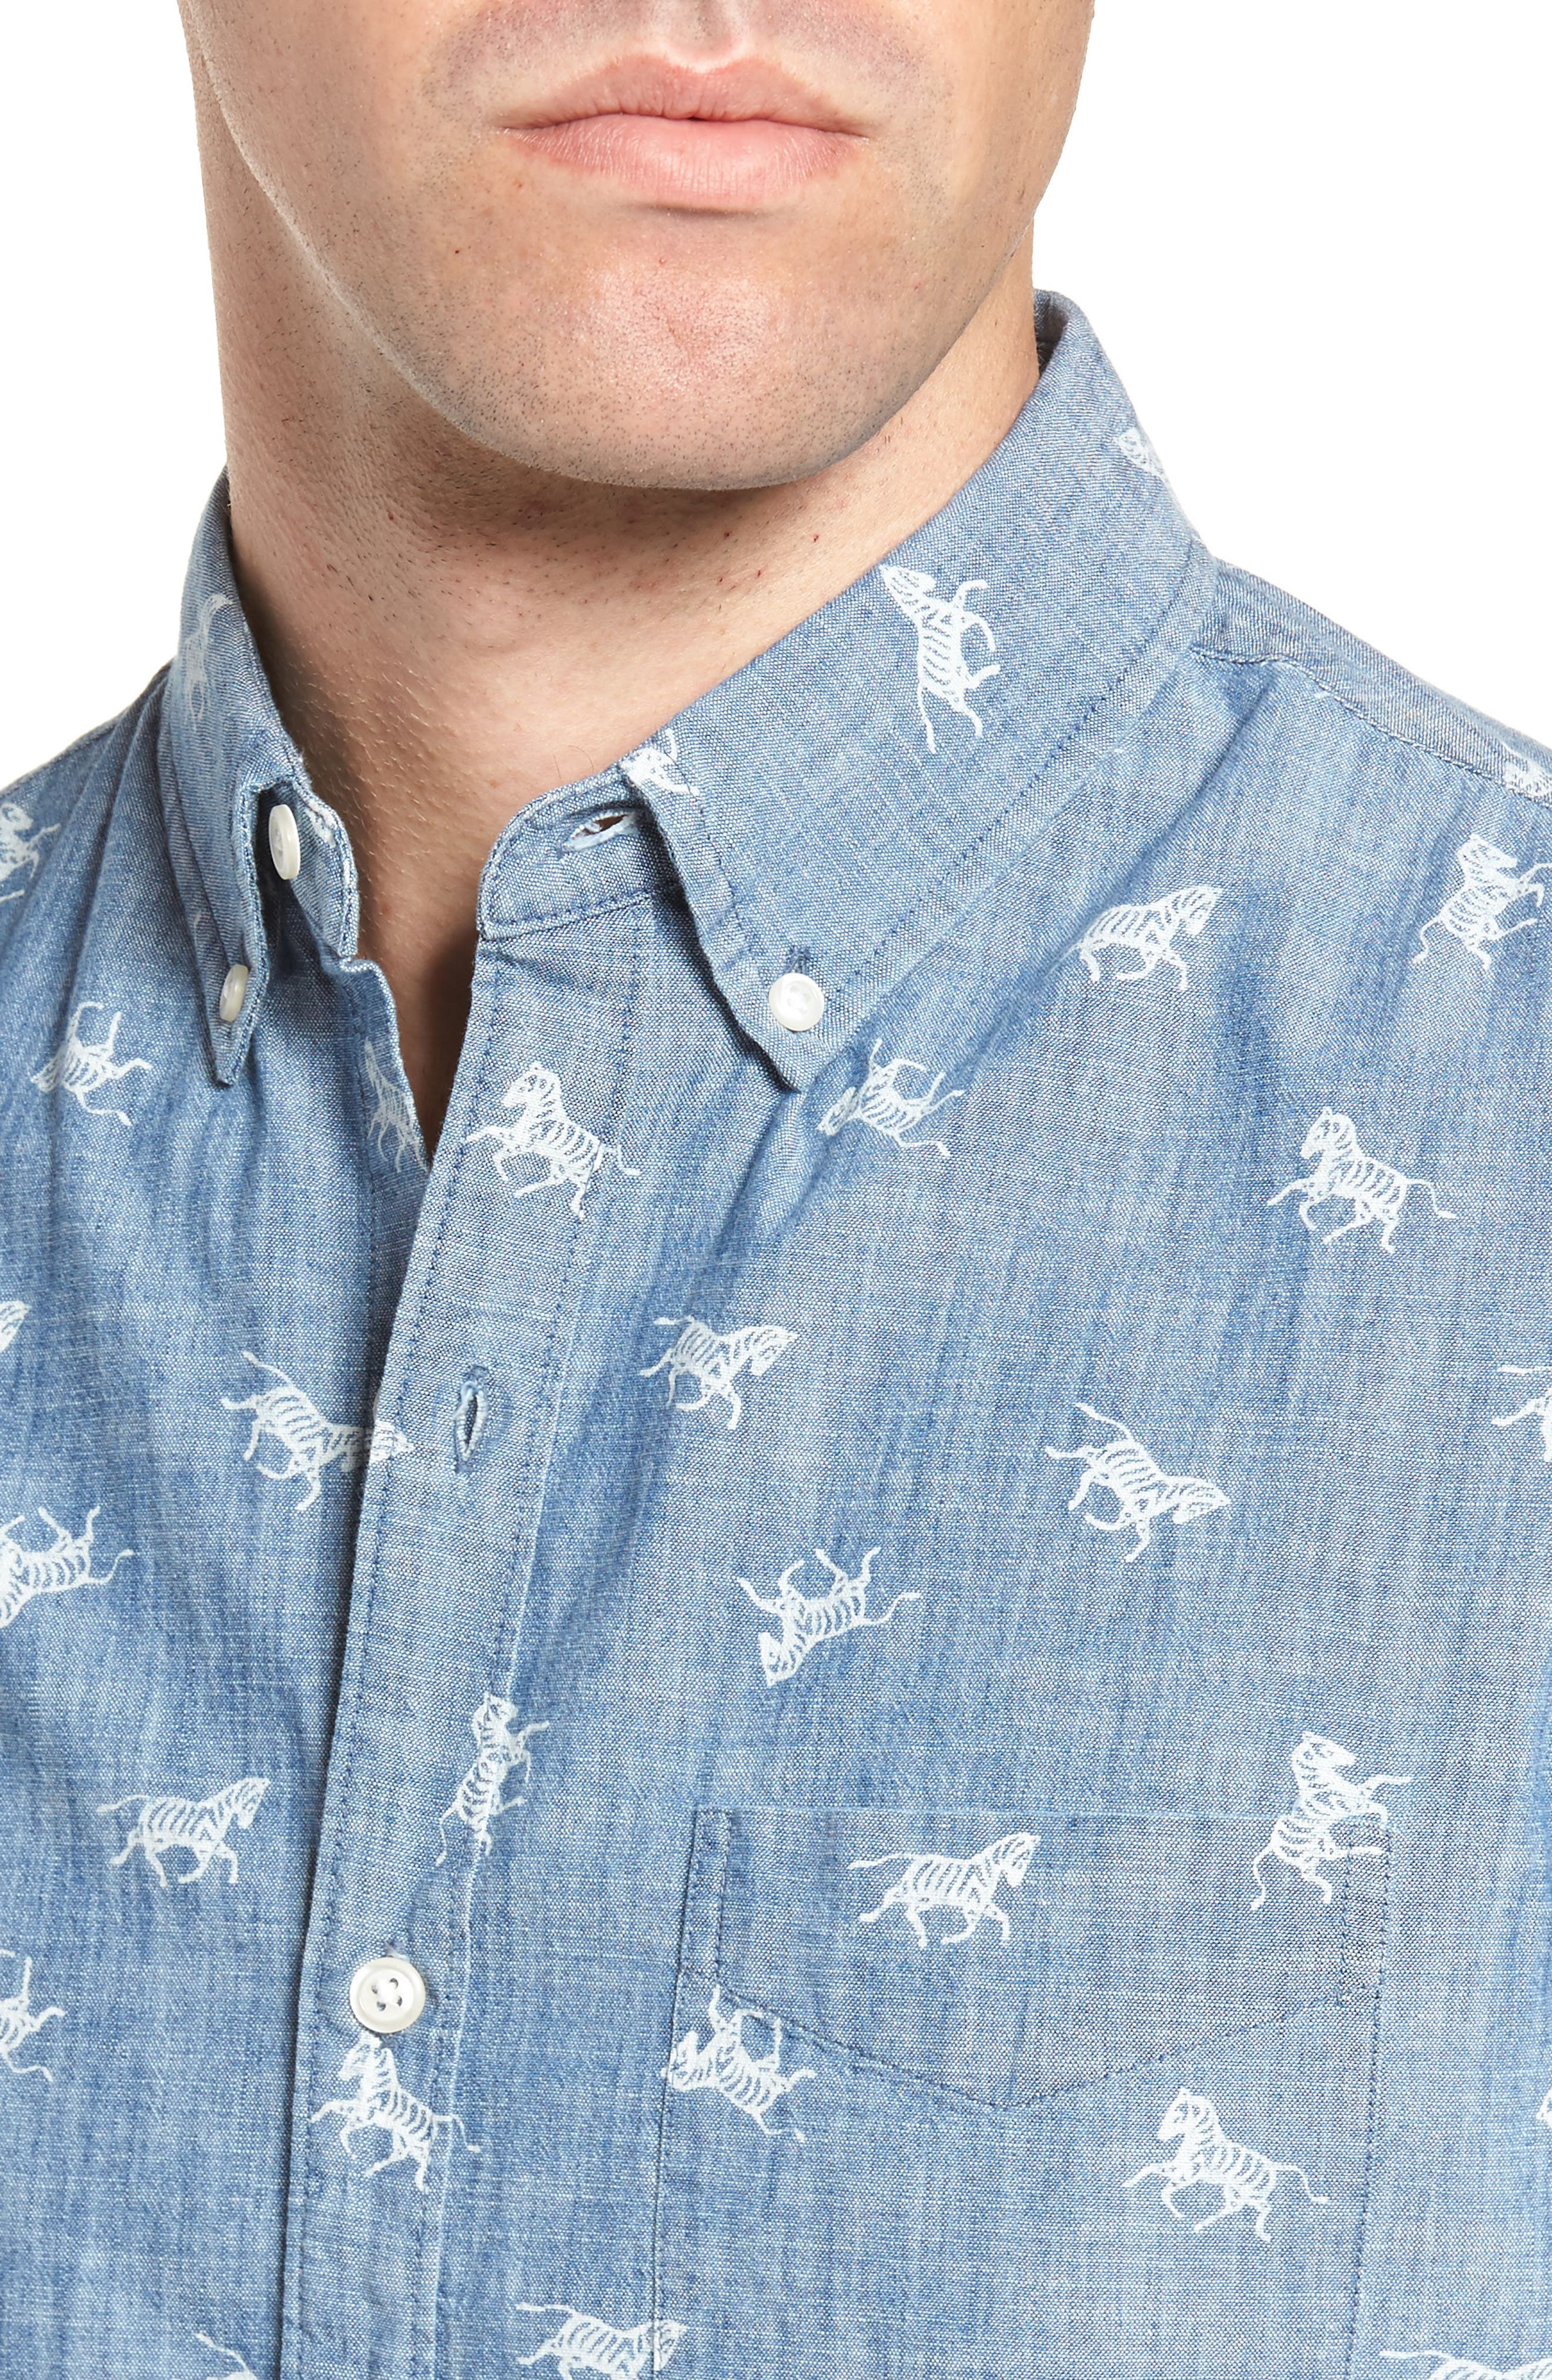 Slim Fit Embroidered Zebras Sport Shirt,                             Alternate thumbnail 4, color,                             Wild Zebras/ Chambray